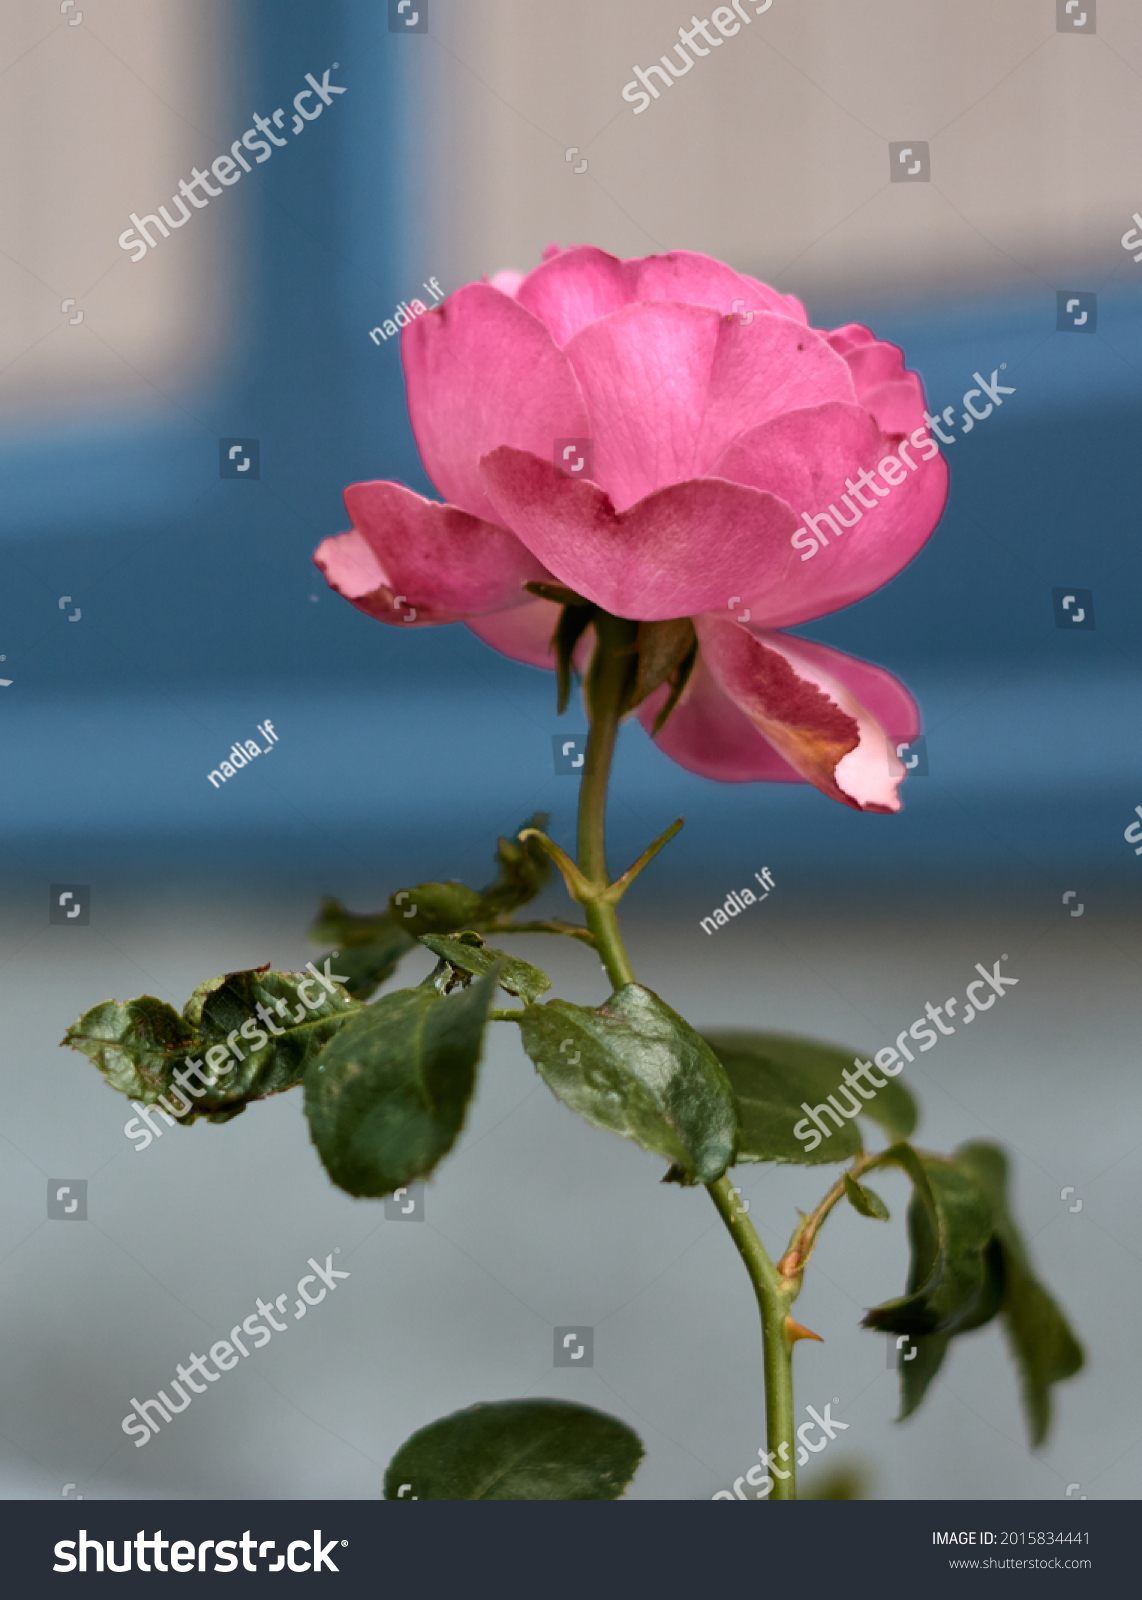 Pink rose flower in the rose garden. side view. Soft focus.High quality photo #2015834441